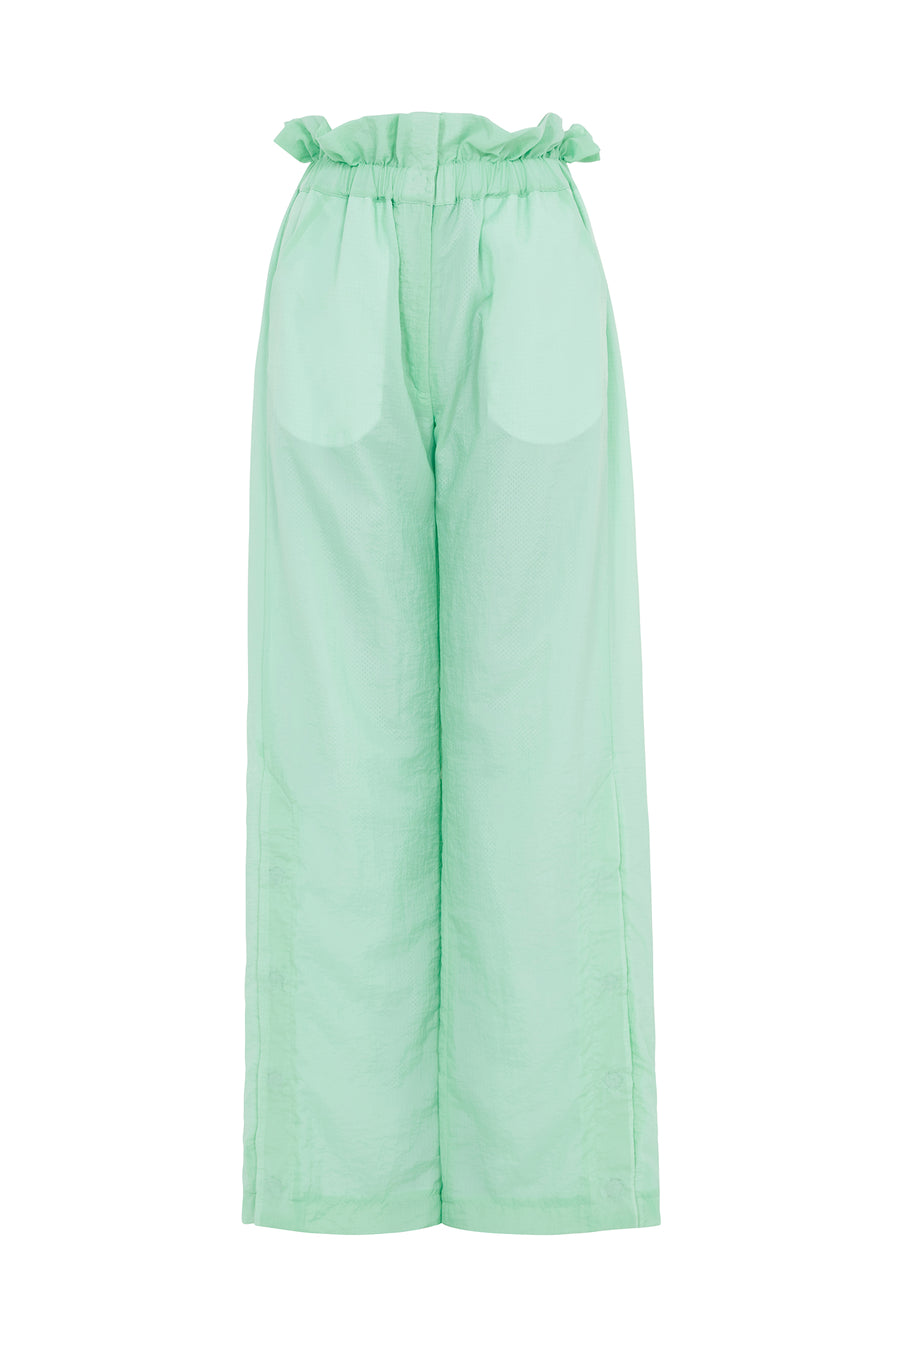 Paperbag Waist Ripstop Trousers (Mint Green) by House of Holland